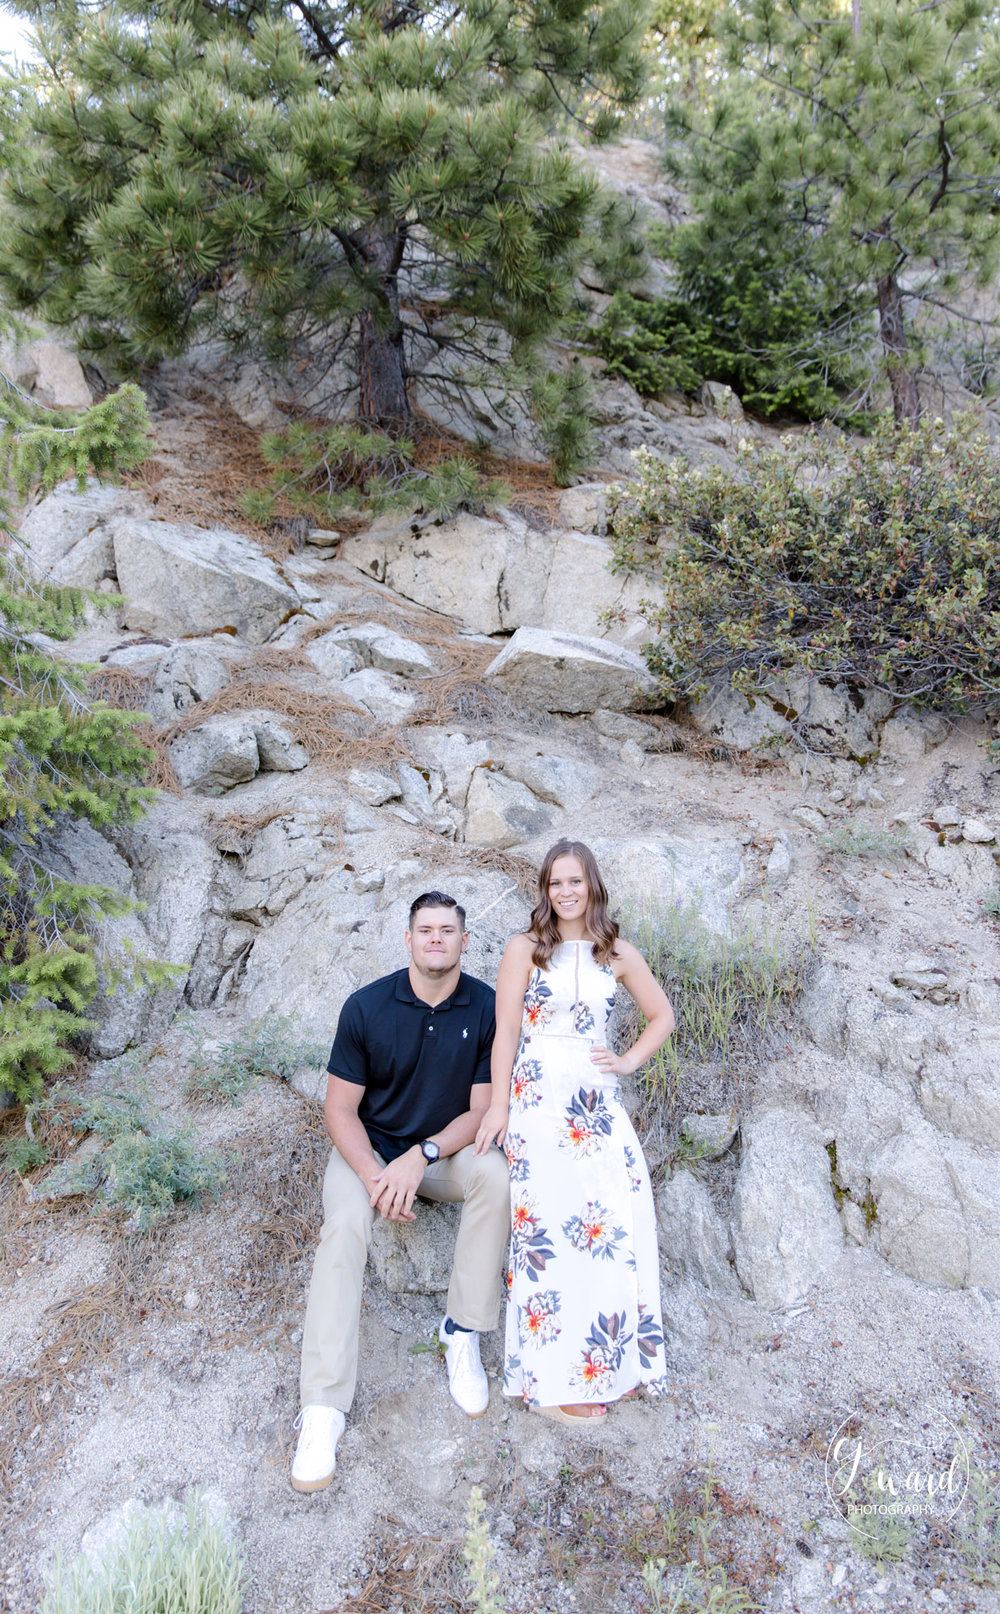 Boise-Engagement-Photographer-Bogus-Basin-Wes-+-Erin-CJ-Ward-Photography-6.jpg